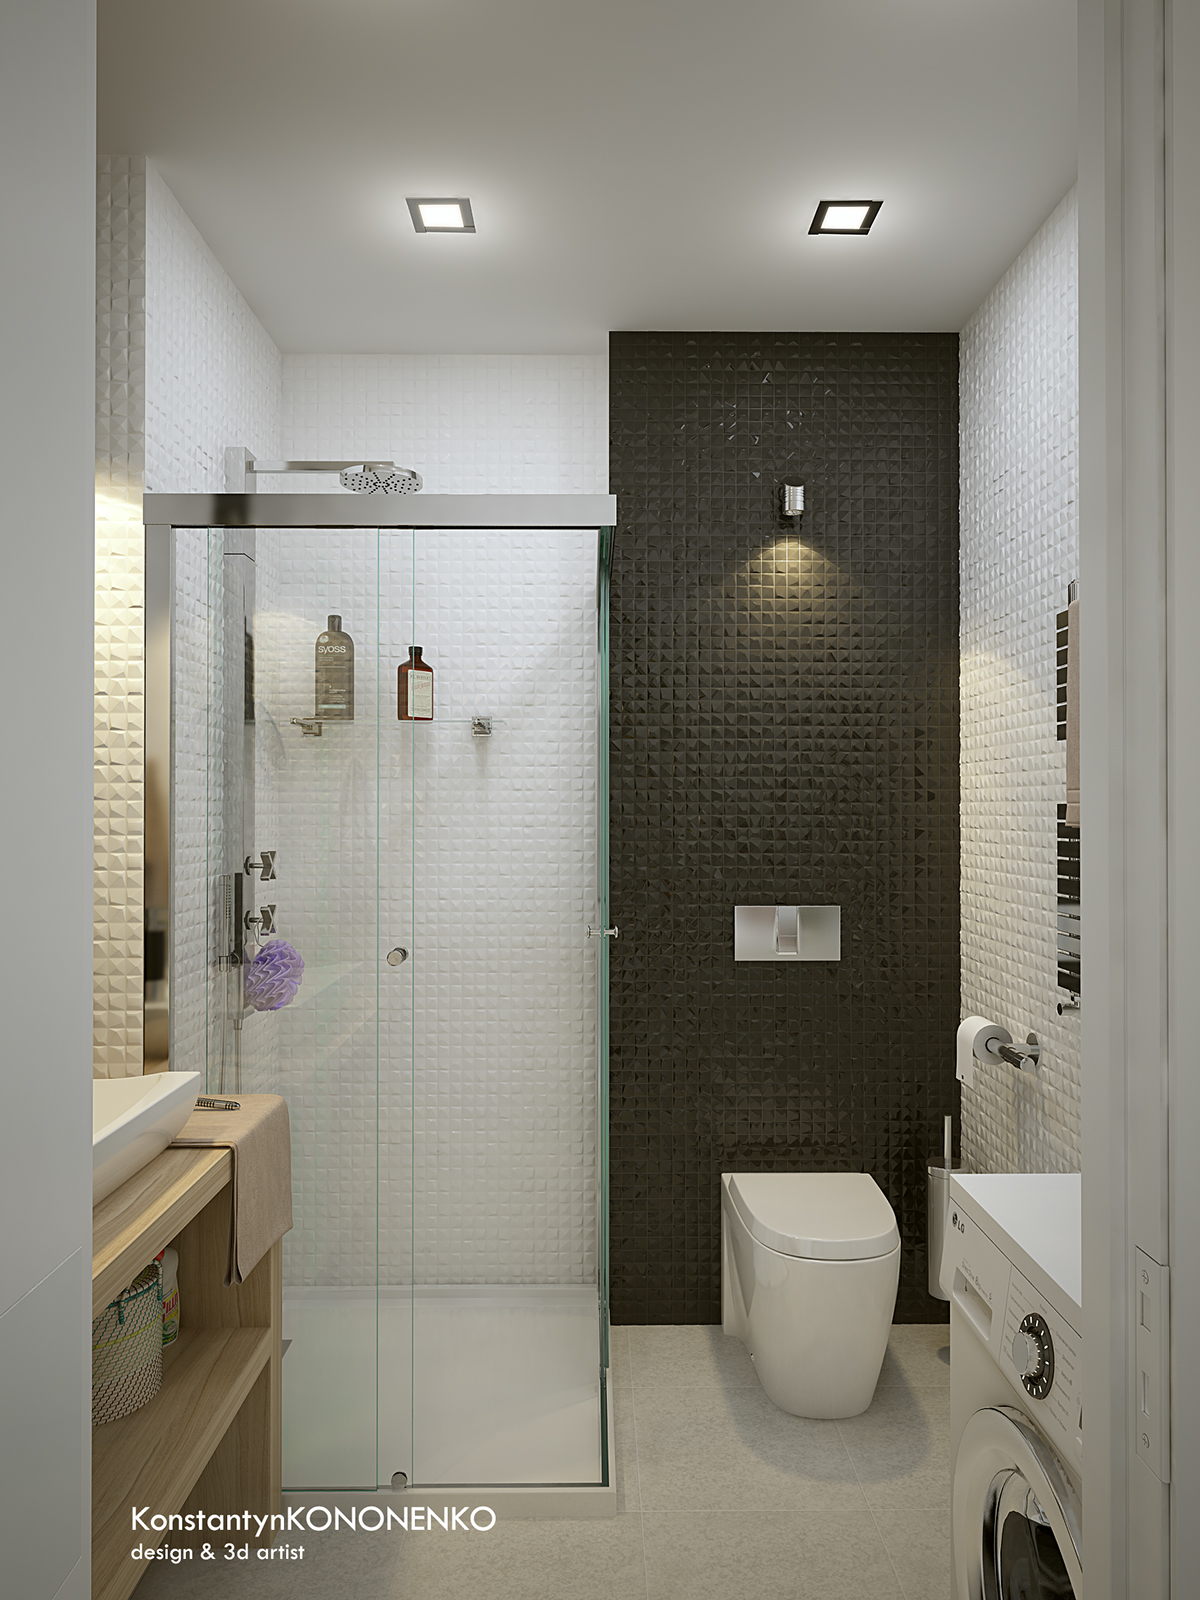 5 apartment designs under 500 square feet for 5 x 4 bathroom designs